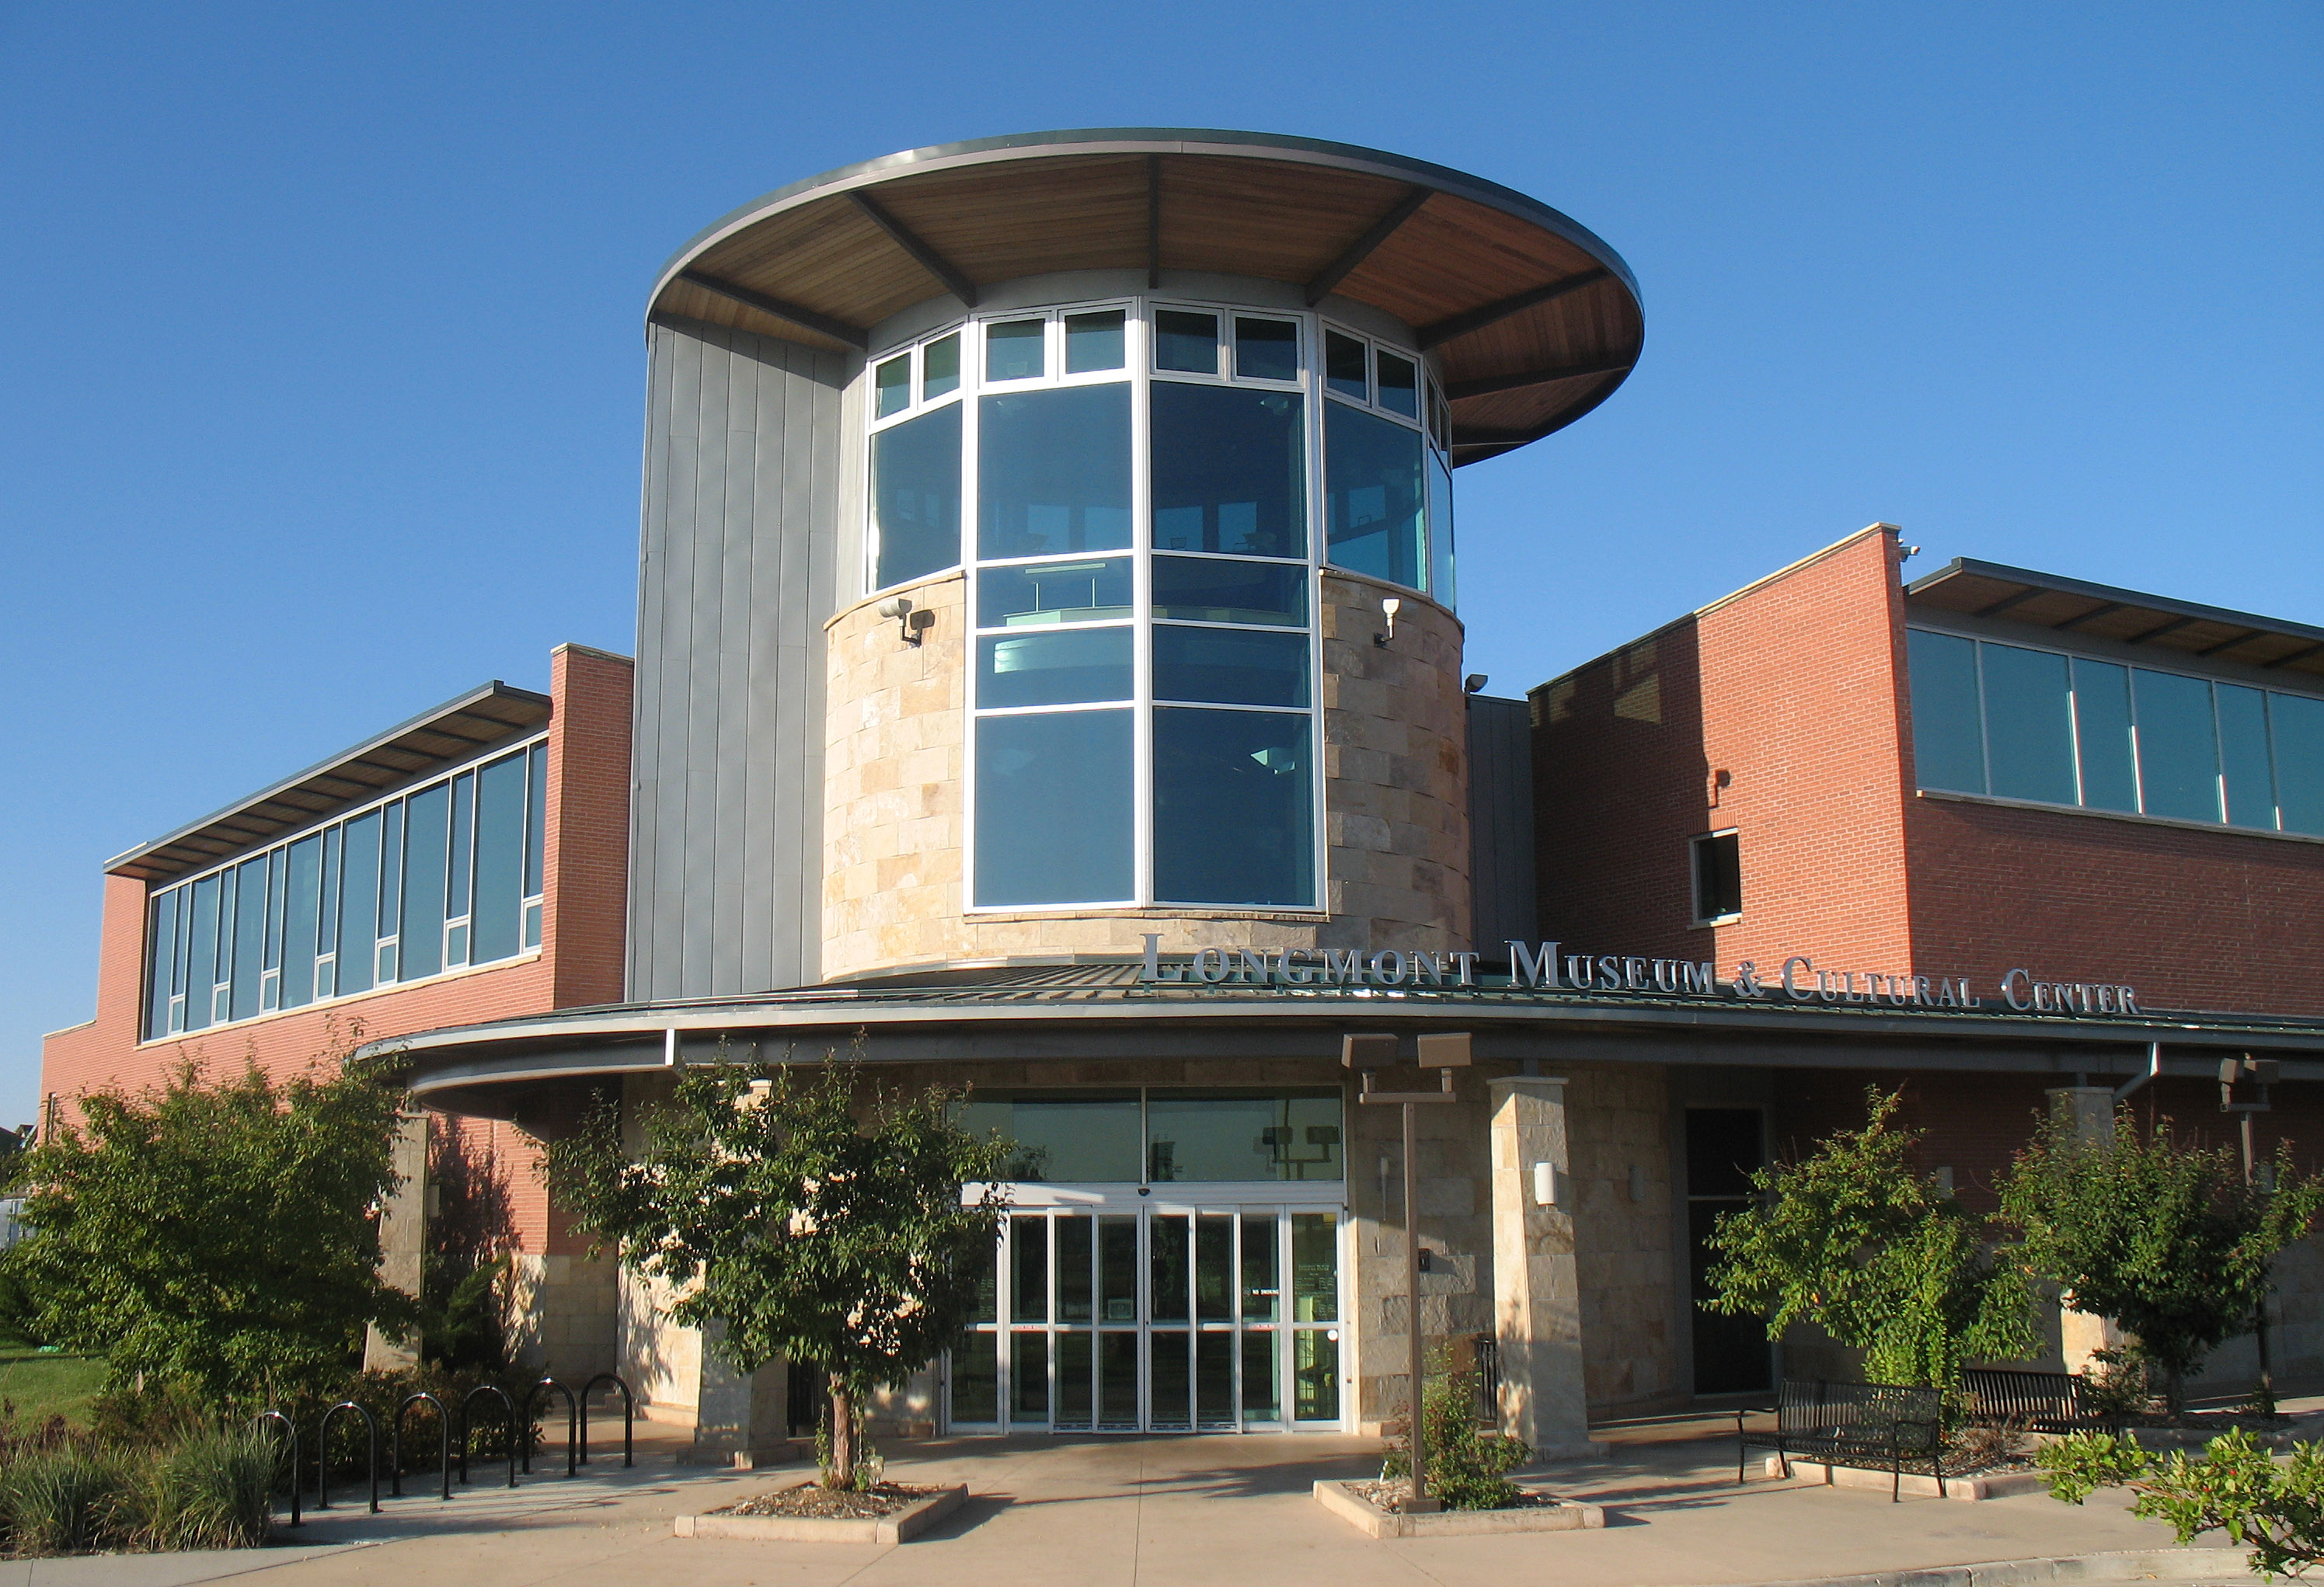 Longmont Museum And Cultural Center